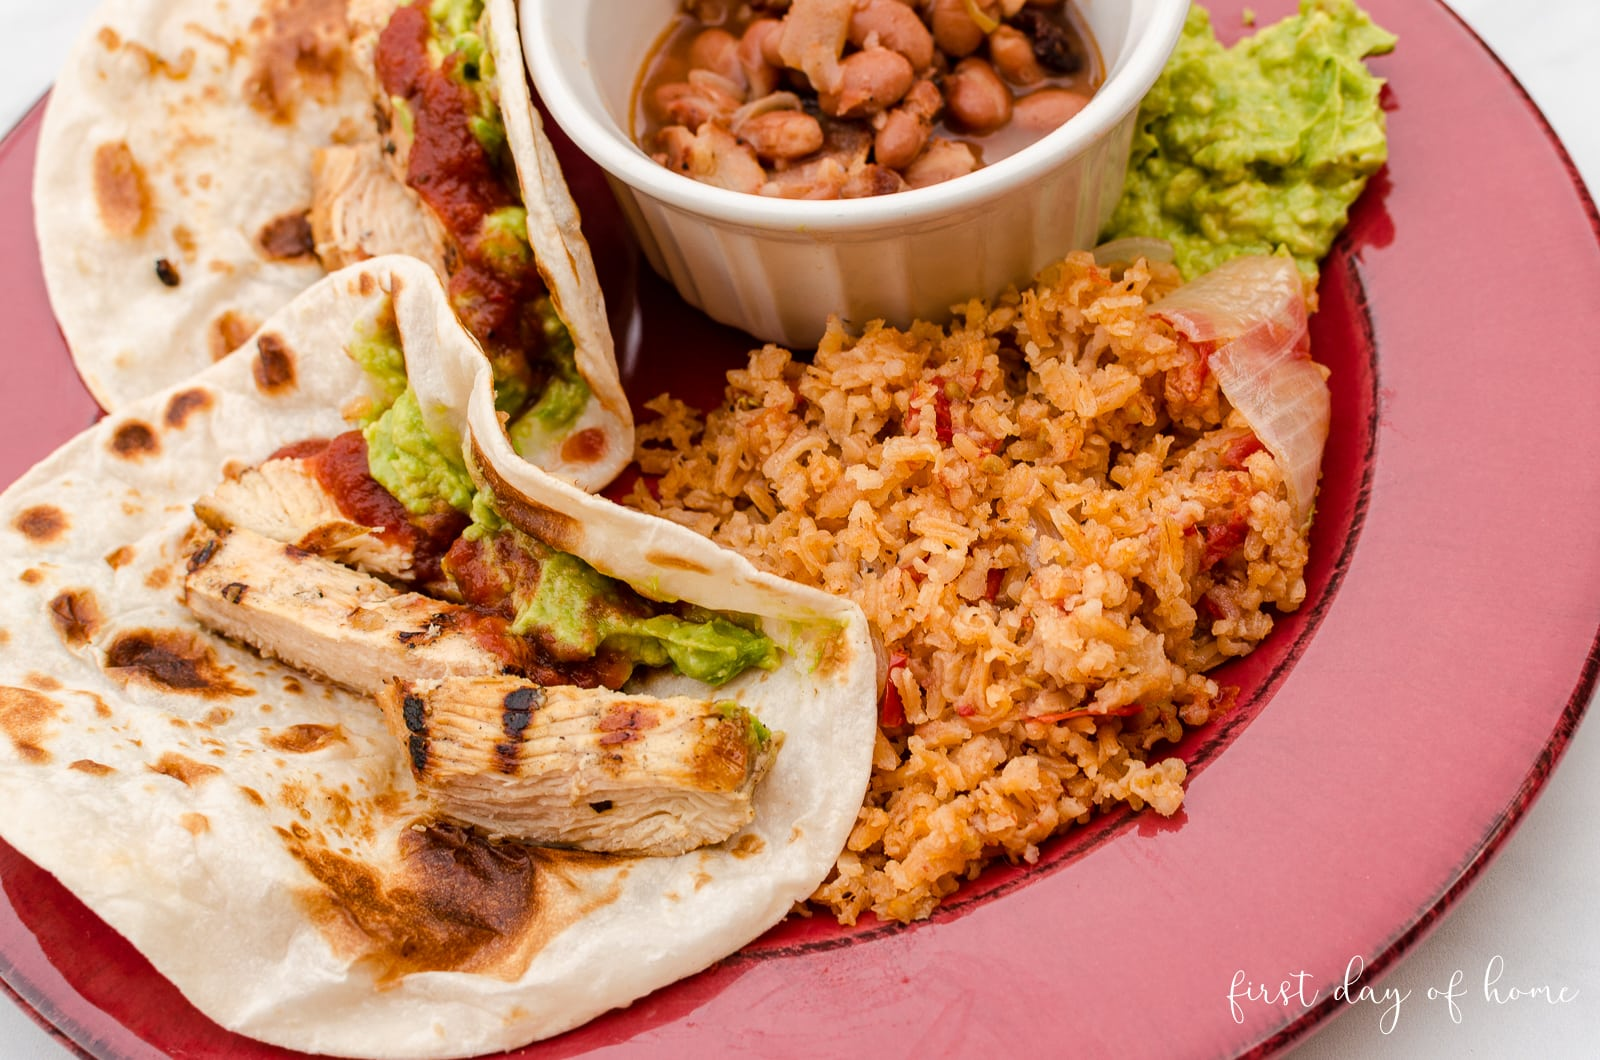 Spanish rice served with charro beans, flour tortillas and chicken fajitas